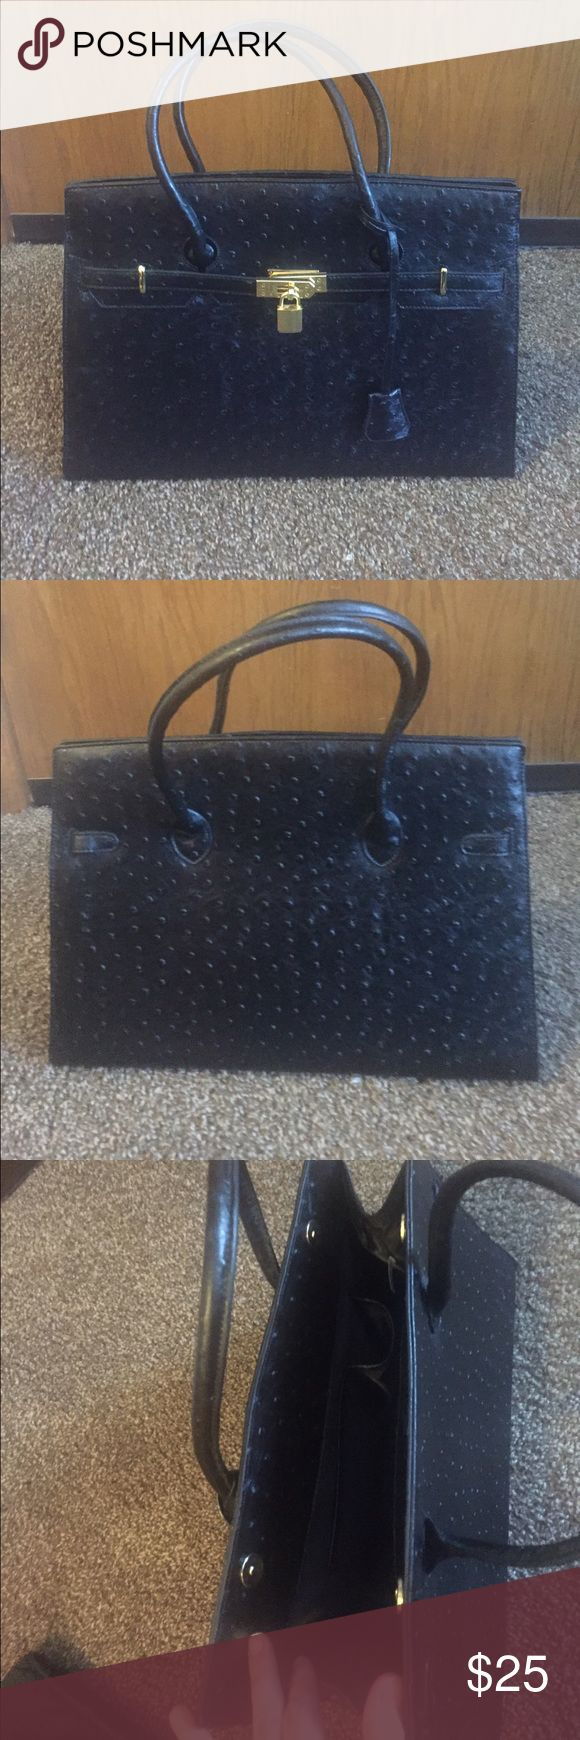 Black ostrich purse Used once. In great condition. Any questions please ask. Bags